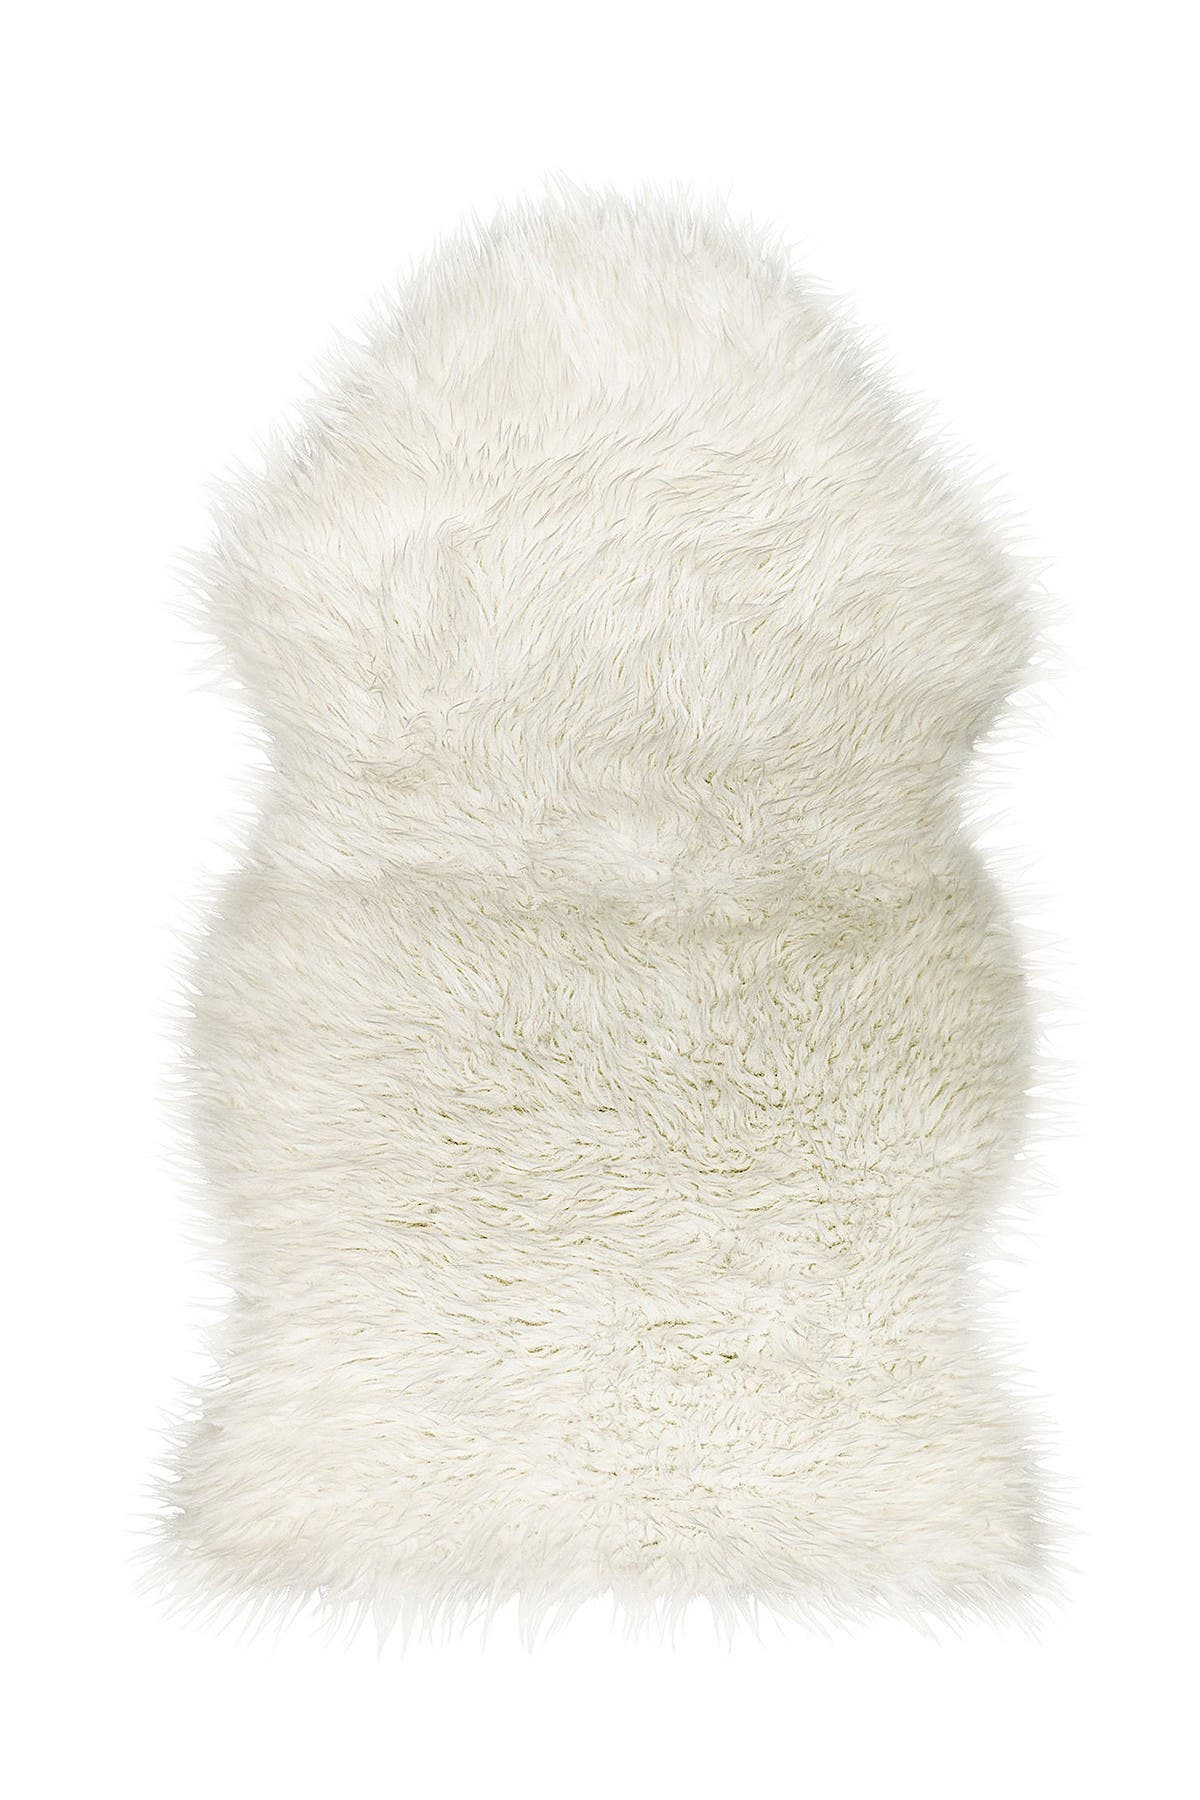 Image of LUXE Faux Fur Gordon Rug - 2ft x 3ft - Off White